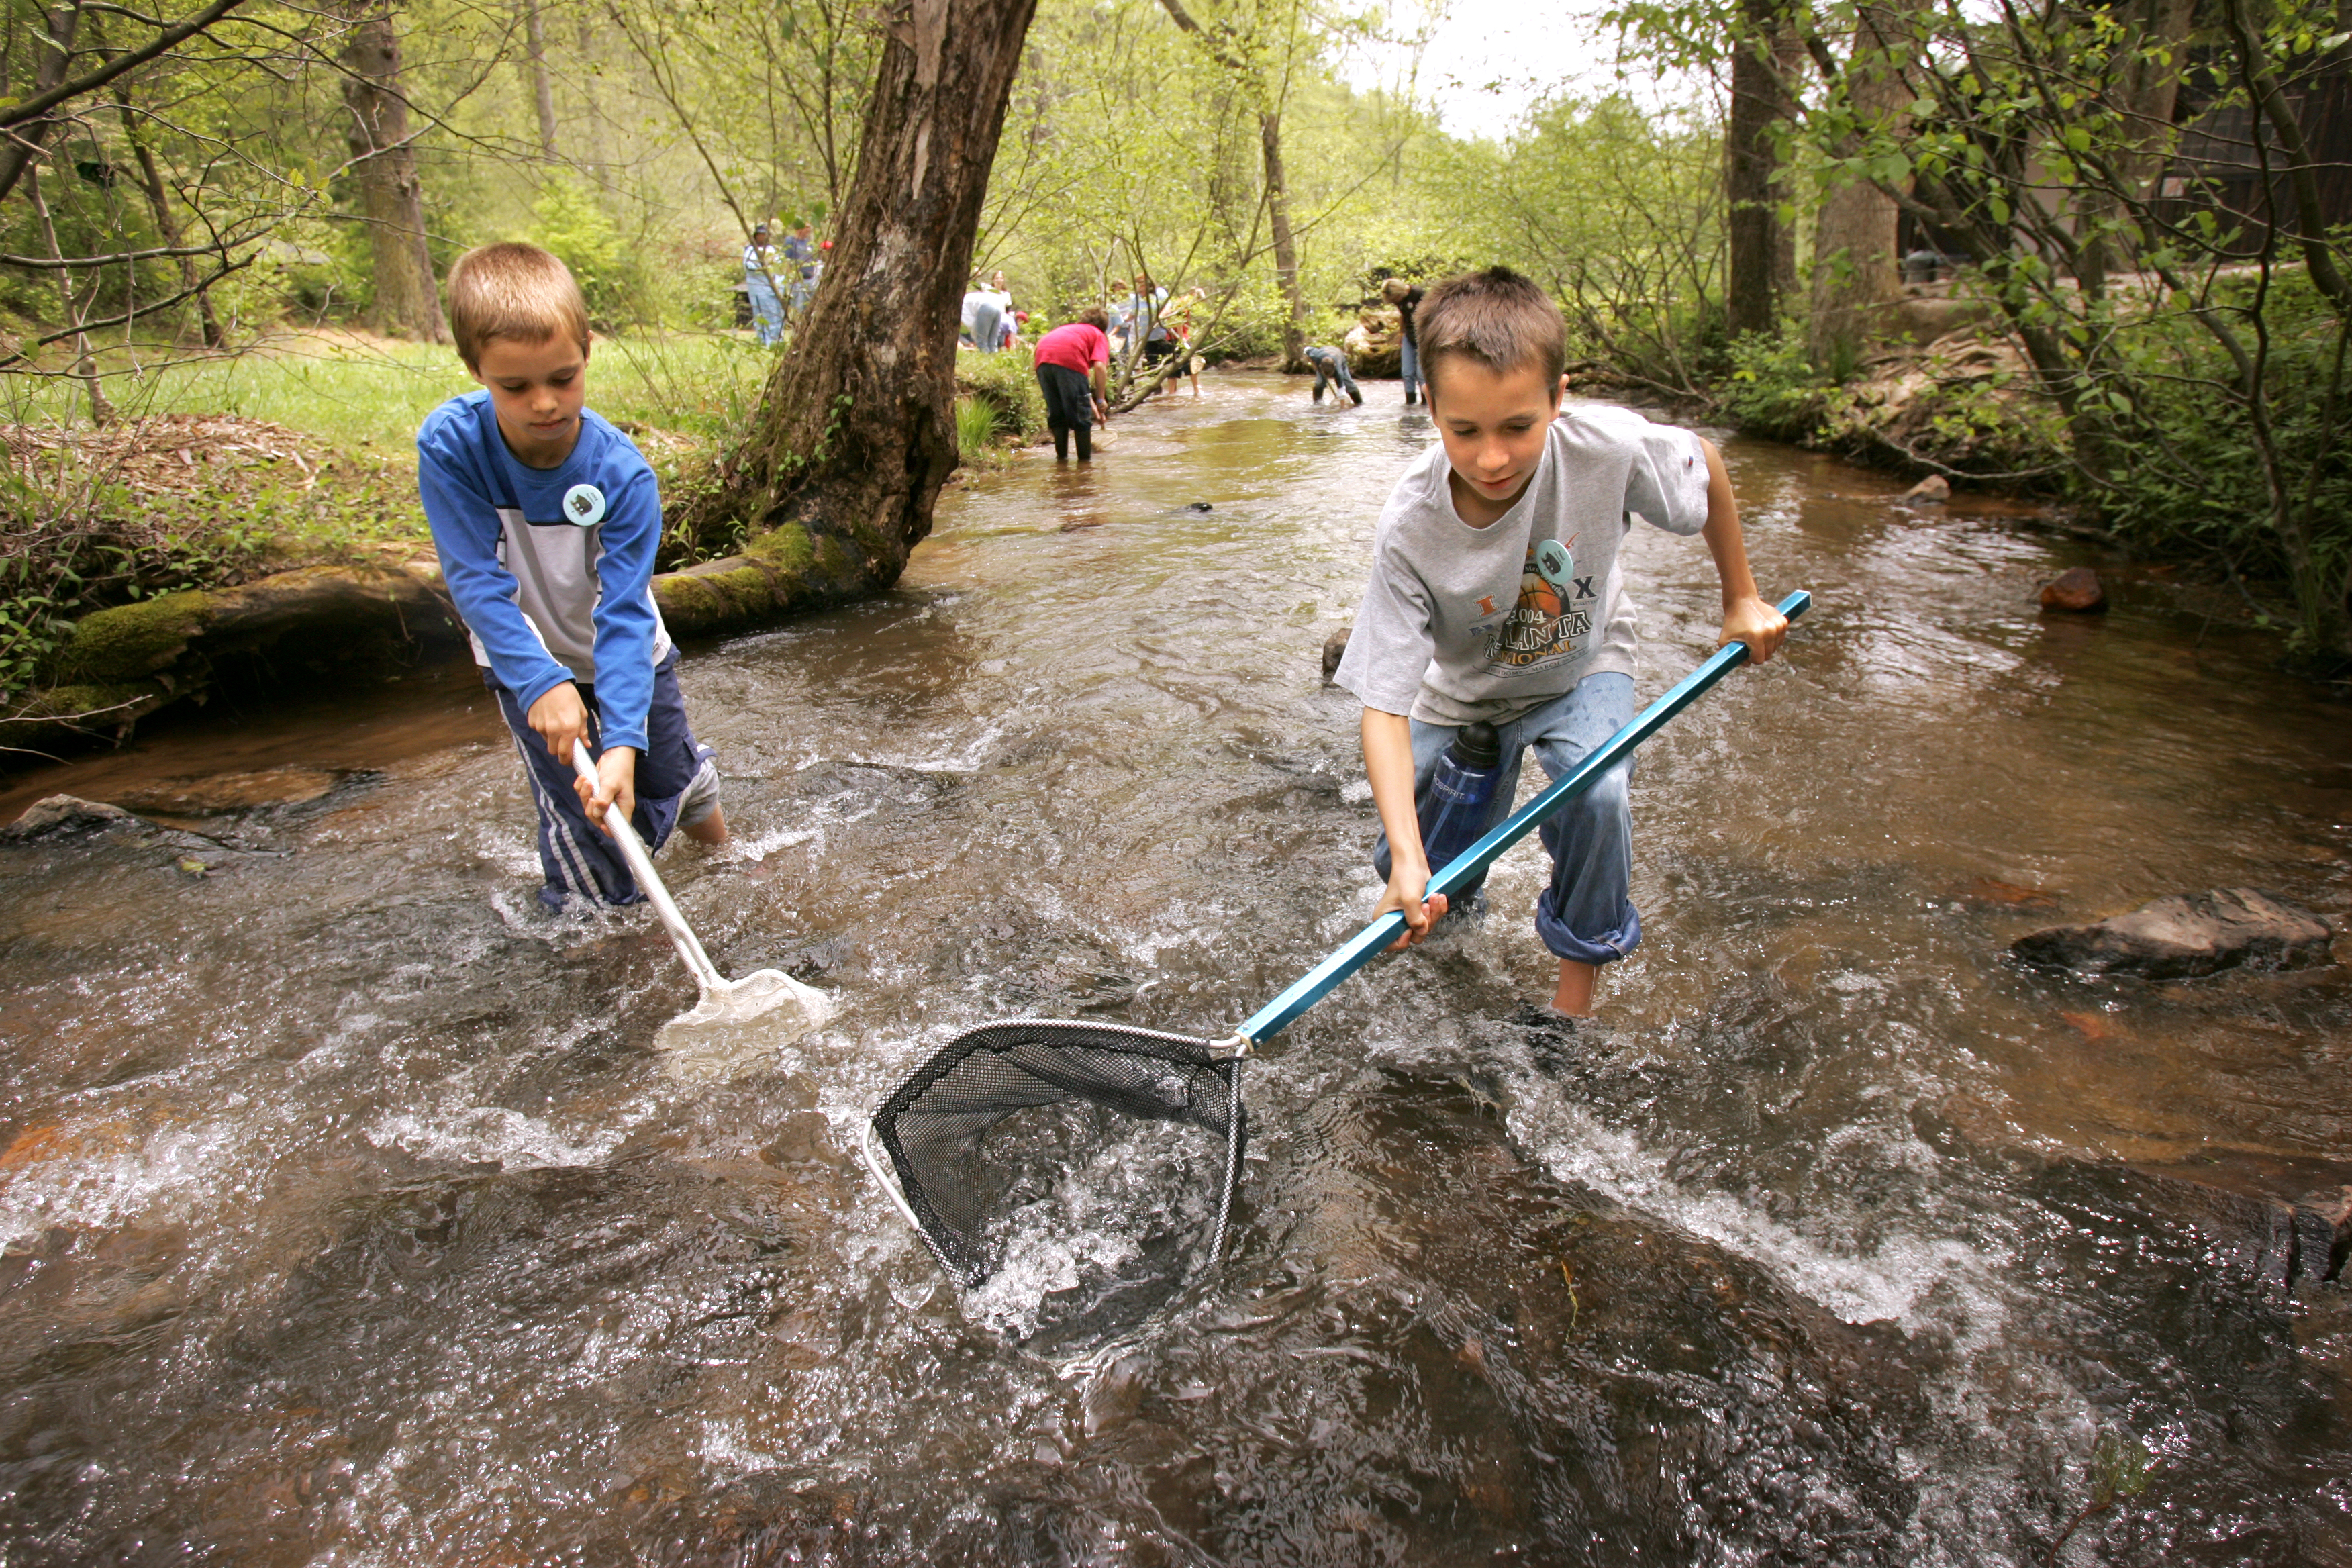 Alpharetta Elementary 4th graders from left Joey Santoro, 10, and Neal Seaman, 10, search a stream for life during environmental education at Washega 4H camp in Dahlonega, Thursday, April 28, 2005.